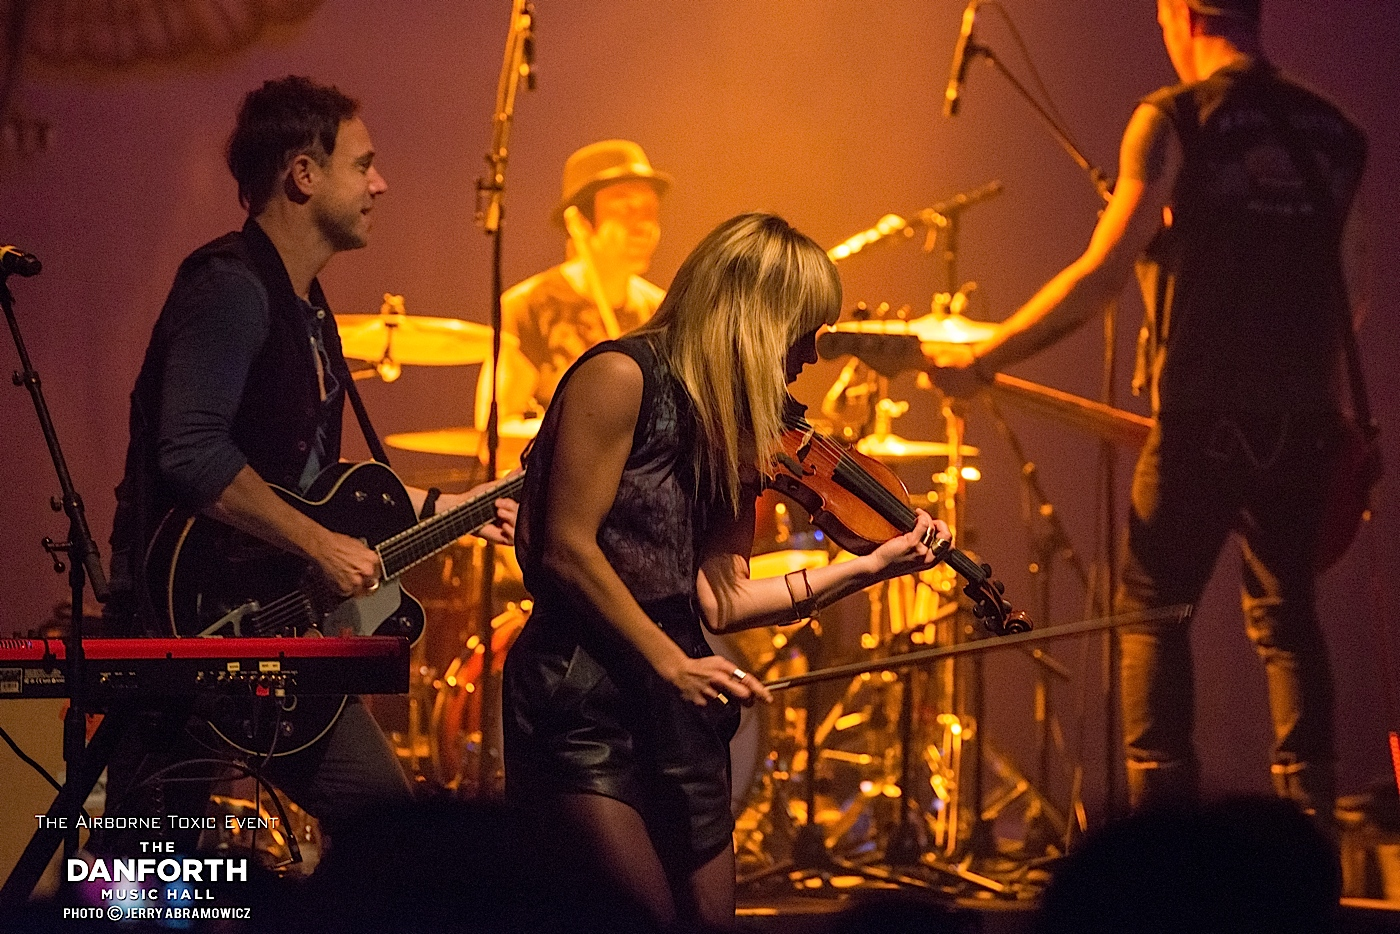 20130514 The Airborne Toxic Event performs at The Danforth Music Hall Toronto 0032